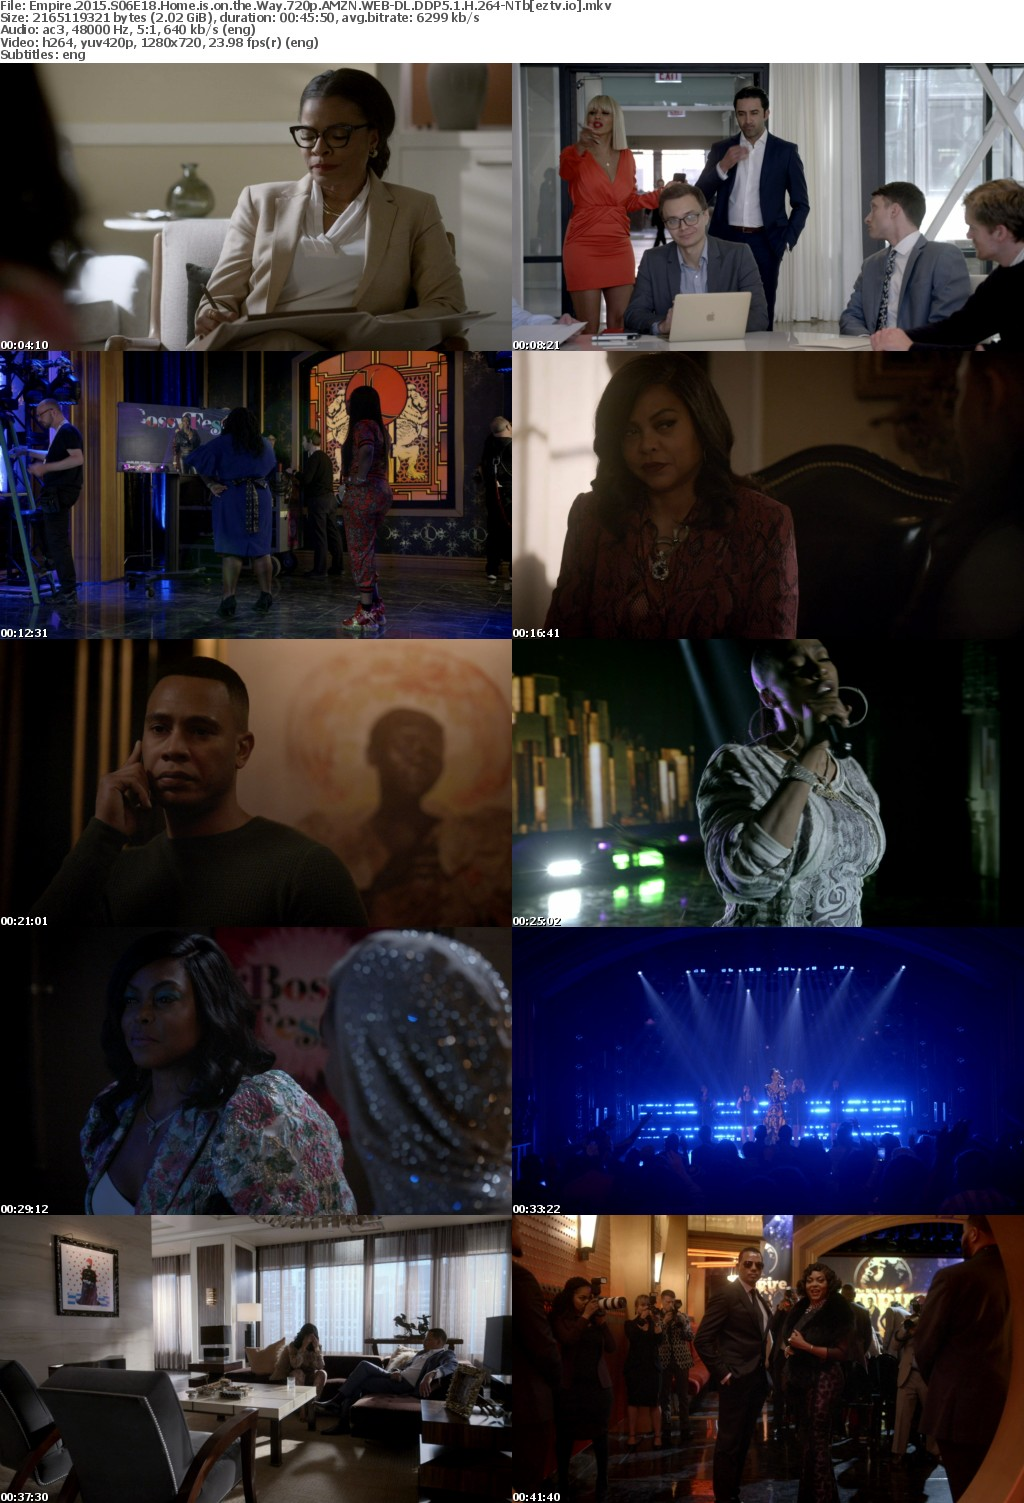 Empire 2015 S06E18 Home is on the Way 720p AMZN WEB-DL DDP5 1 H 264-NTb